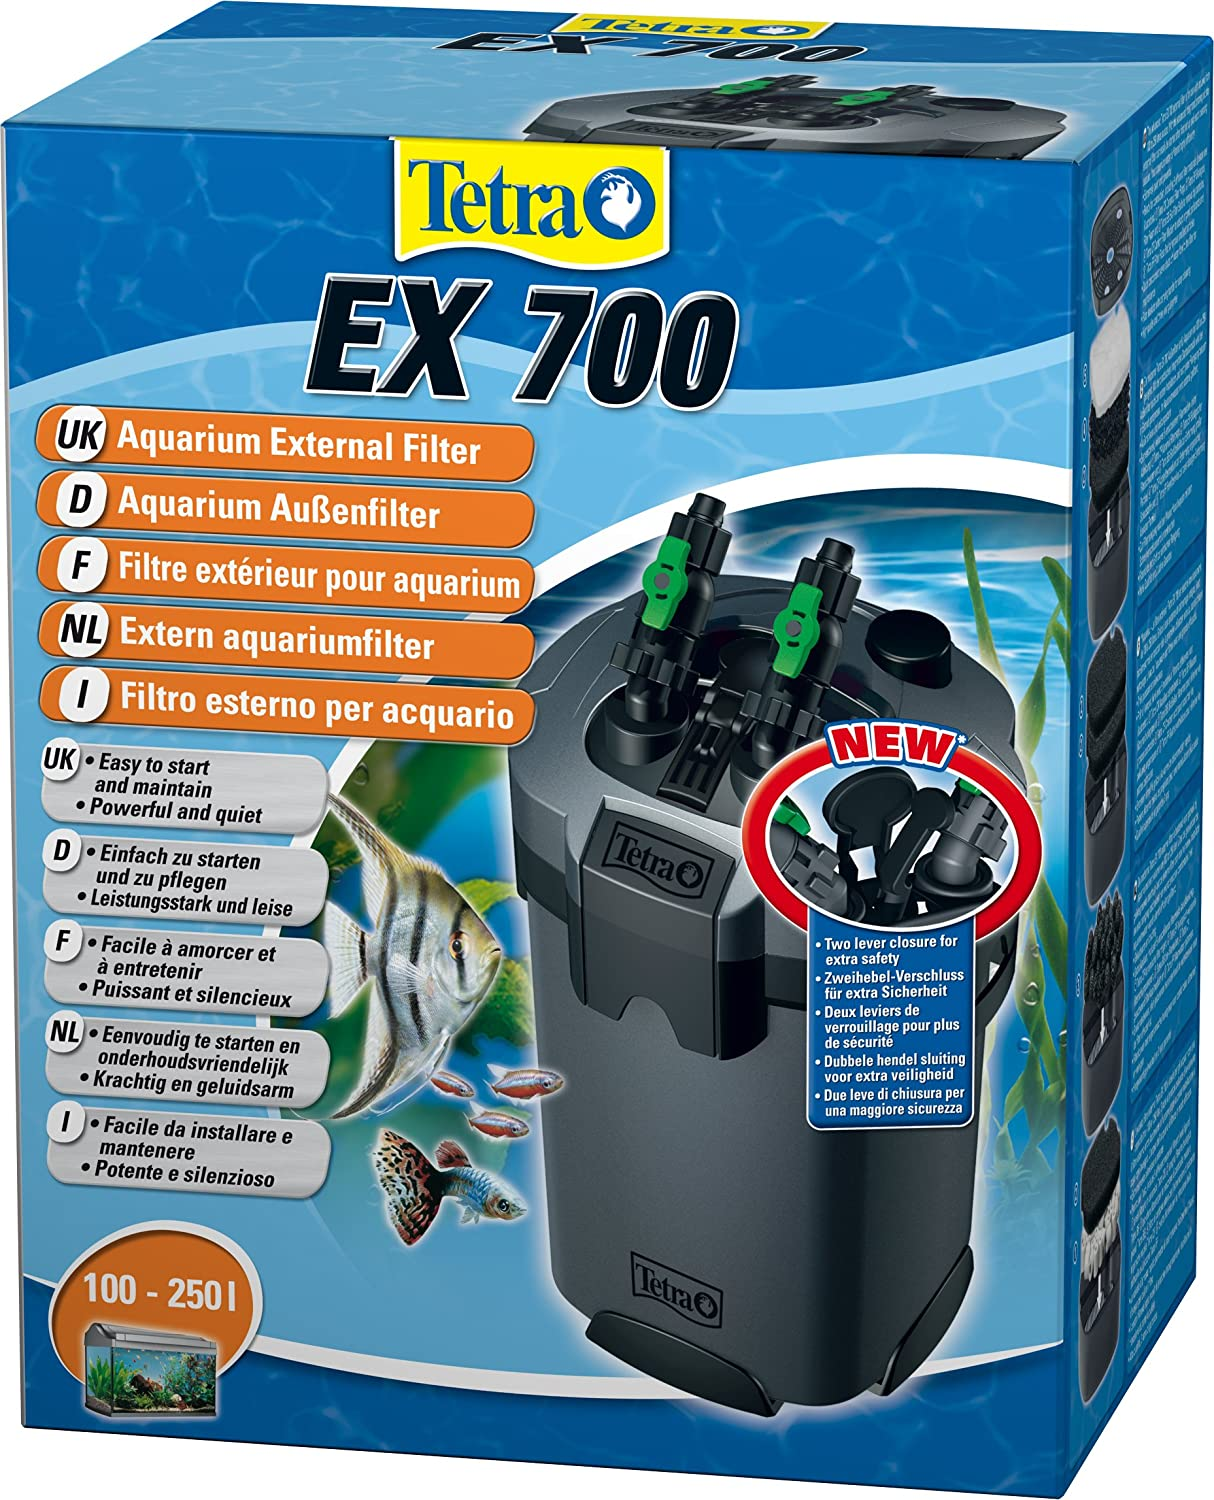 91ri1lf9JjL._SL1500_ tetra tec ex 700 external filter amazon co uk pet supplies  at mifinder.co